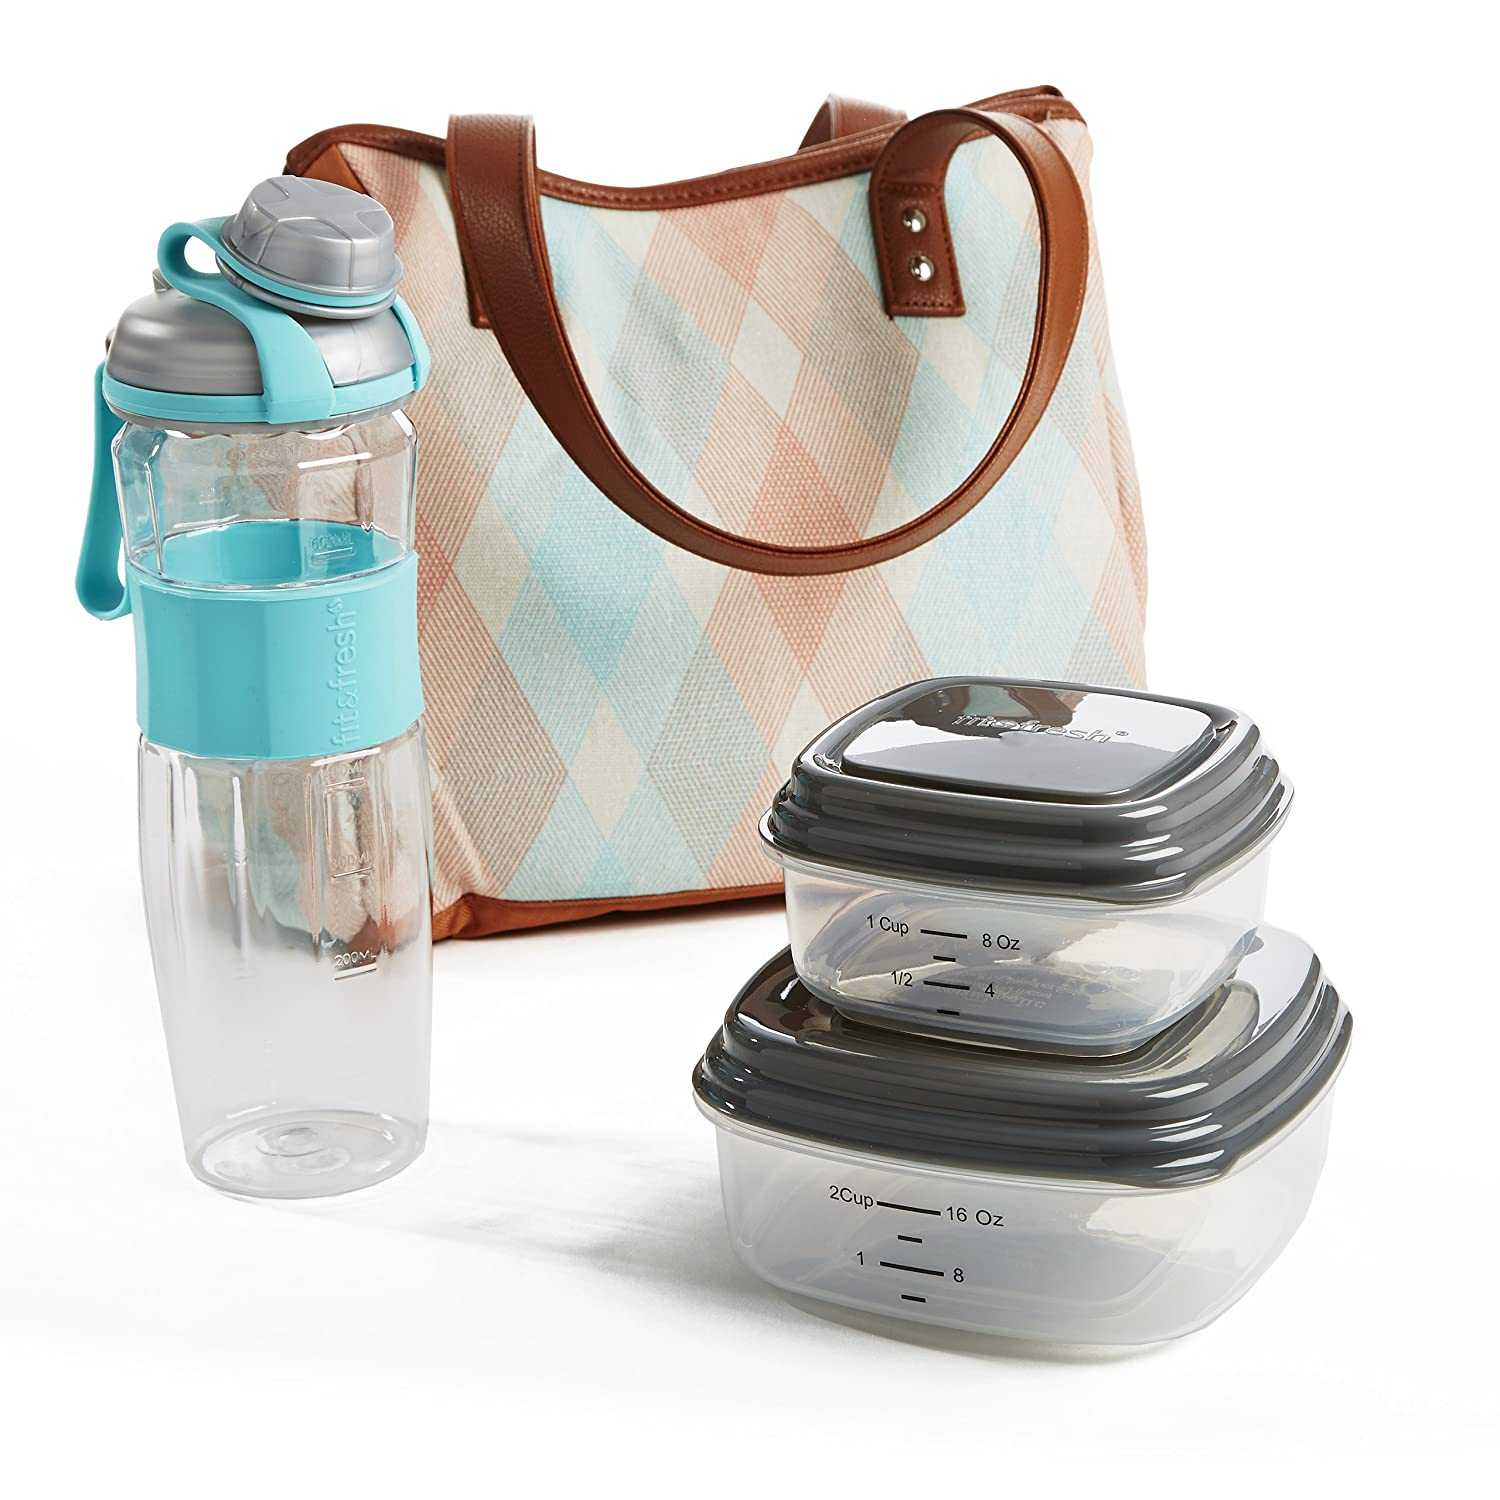 Fit & Fresh Ladies' Westerly Insulated Lunch Bag Set with Reusable Containers and 20 oz. Matching Water Bottle, Zipper Closure, Pocket (Aqua Stamped Rings)